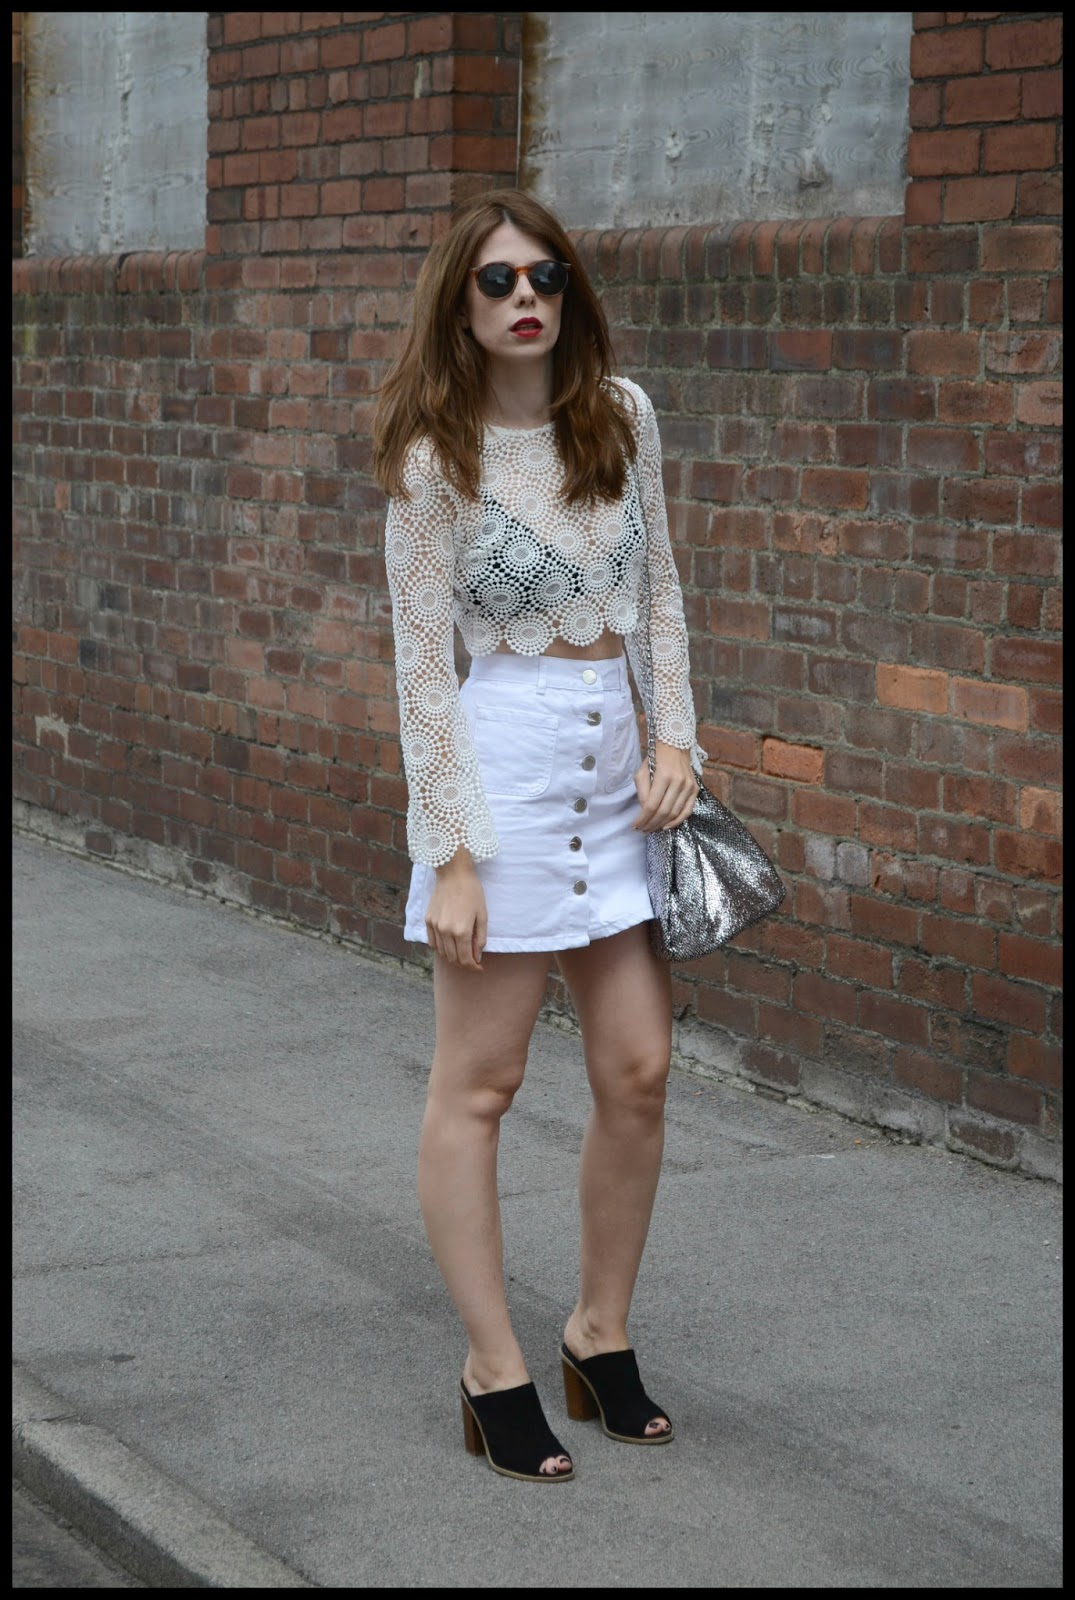 Crochet top white cropped top from Boohoo.com